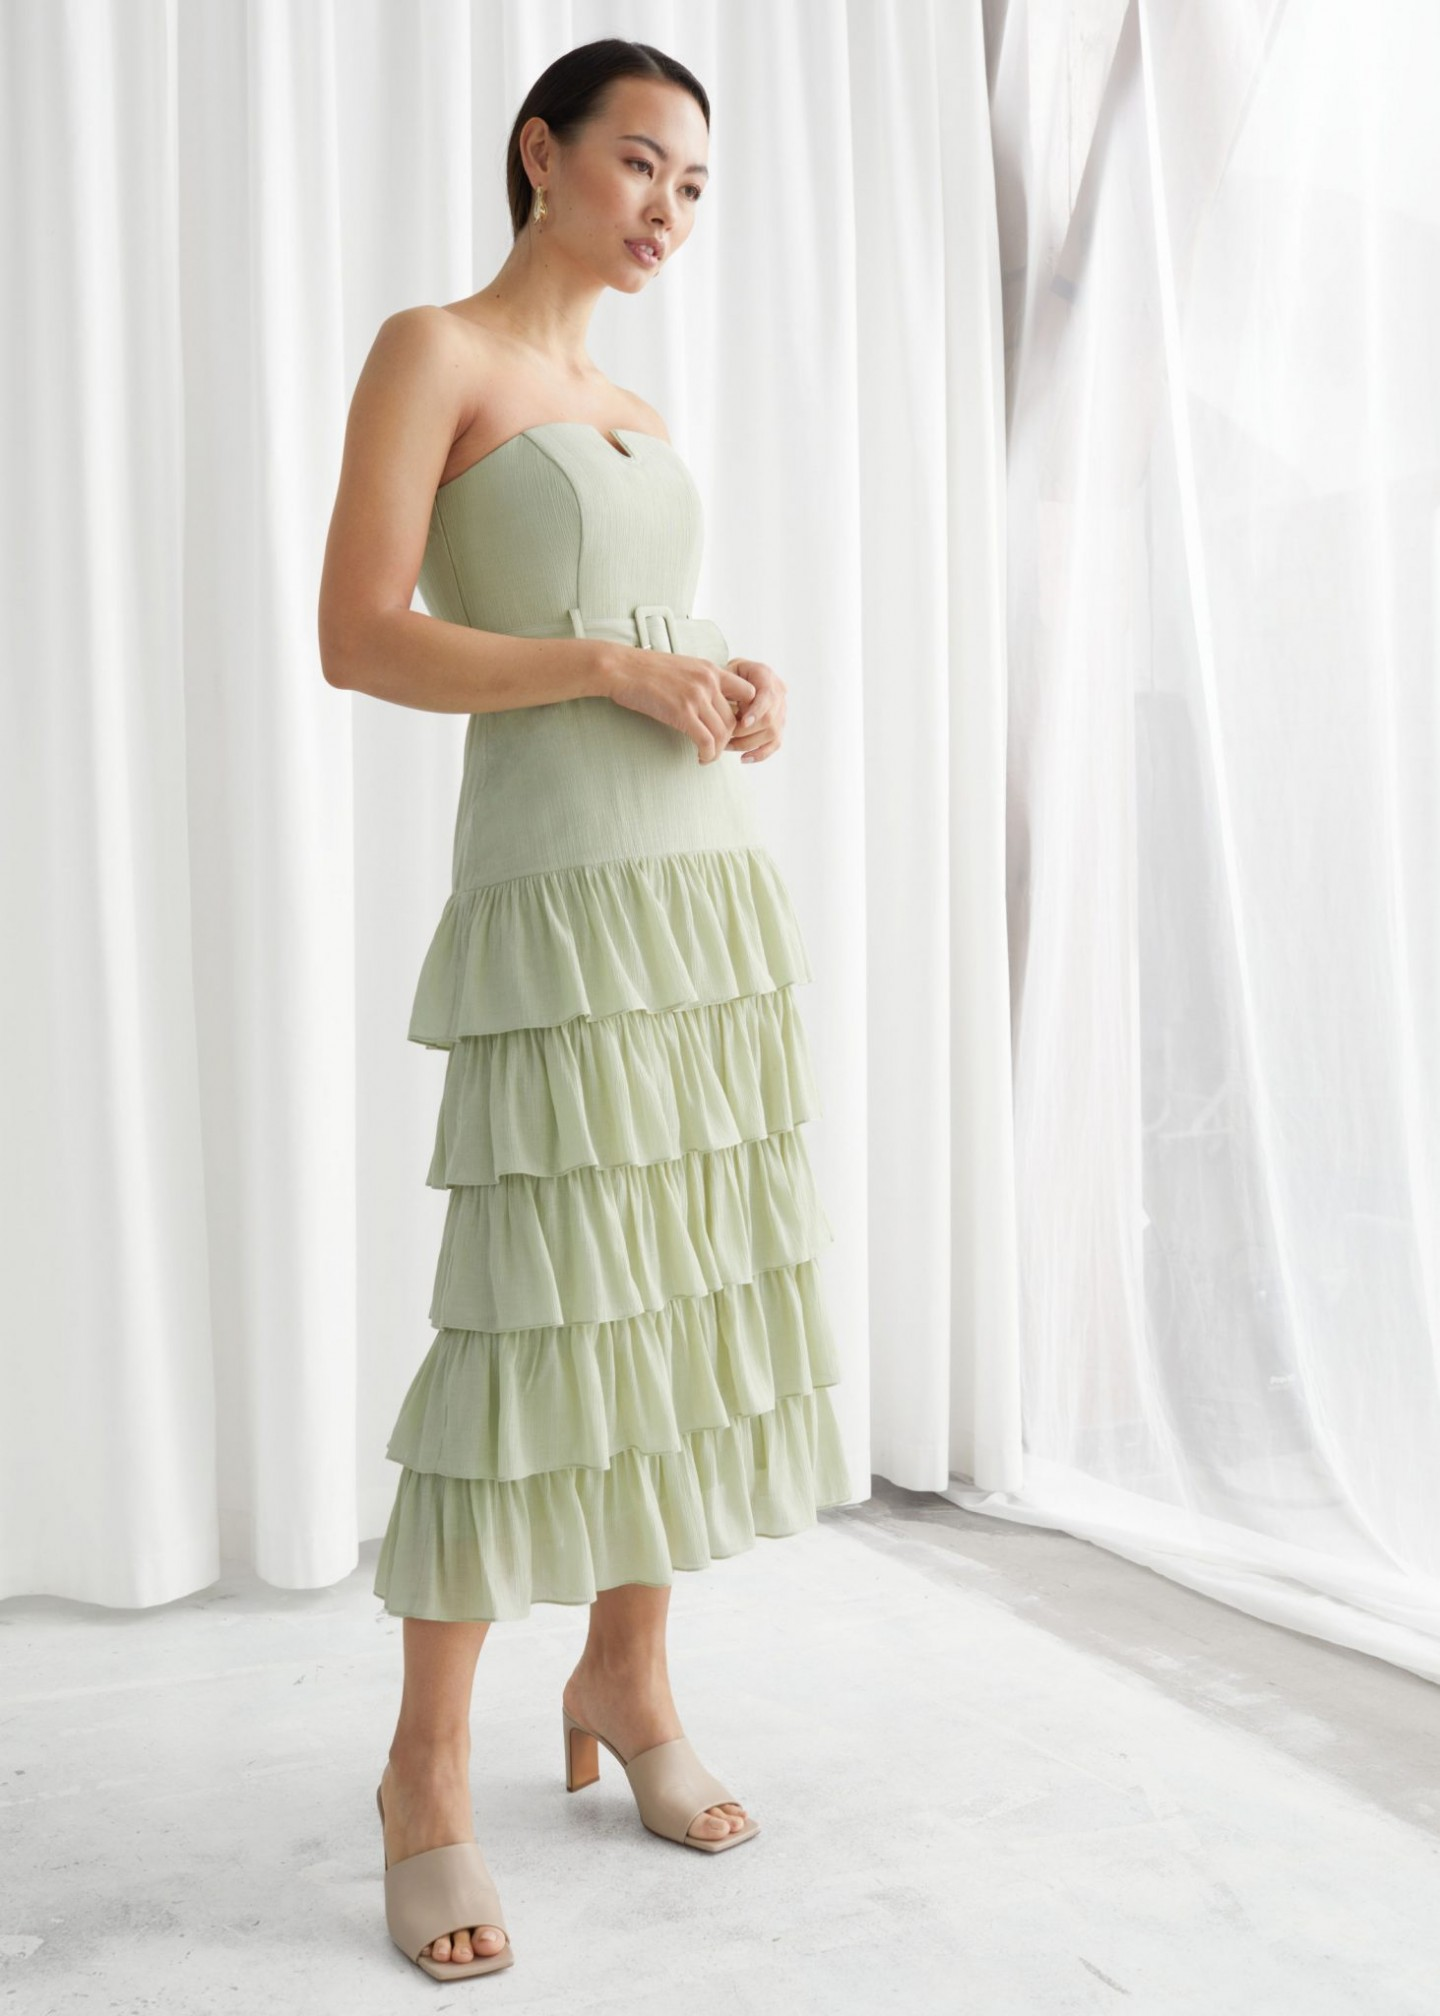 & OTHER STORIES Ruffled Strapless Midi Dress